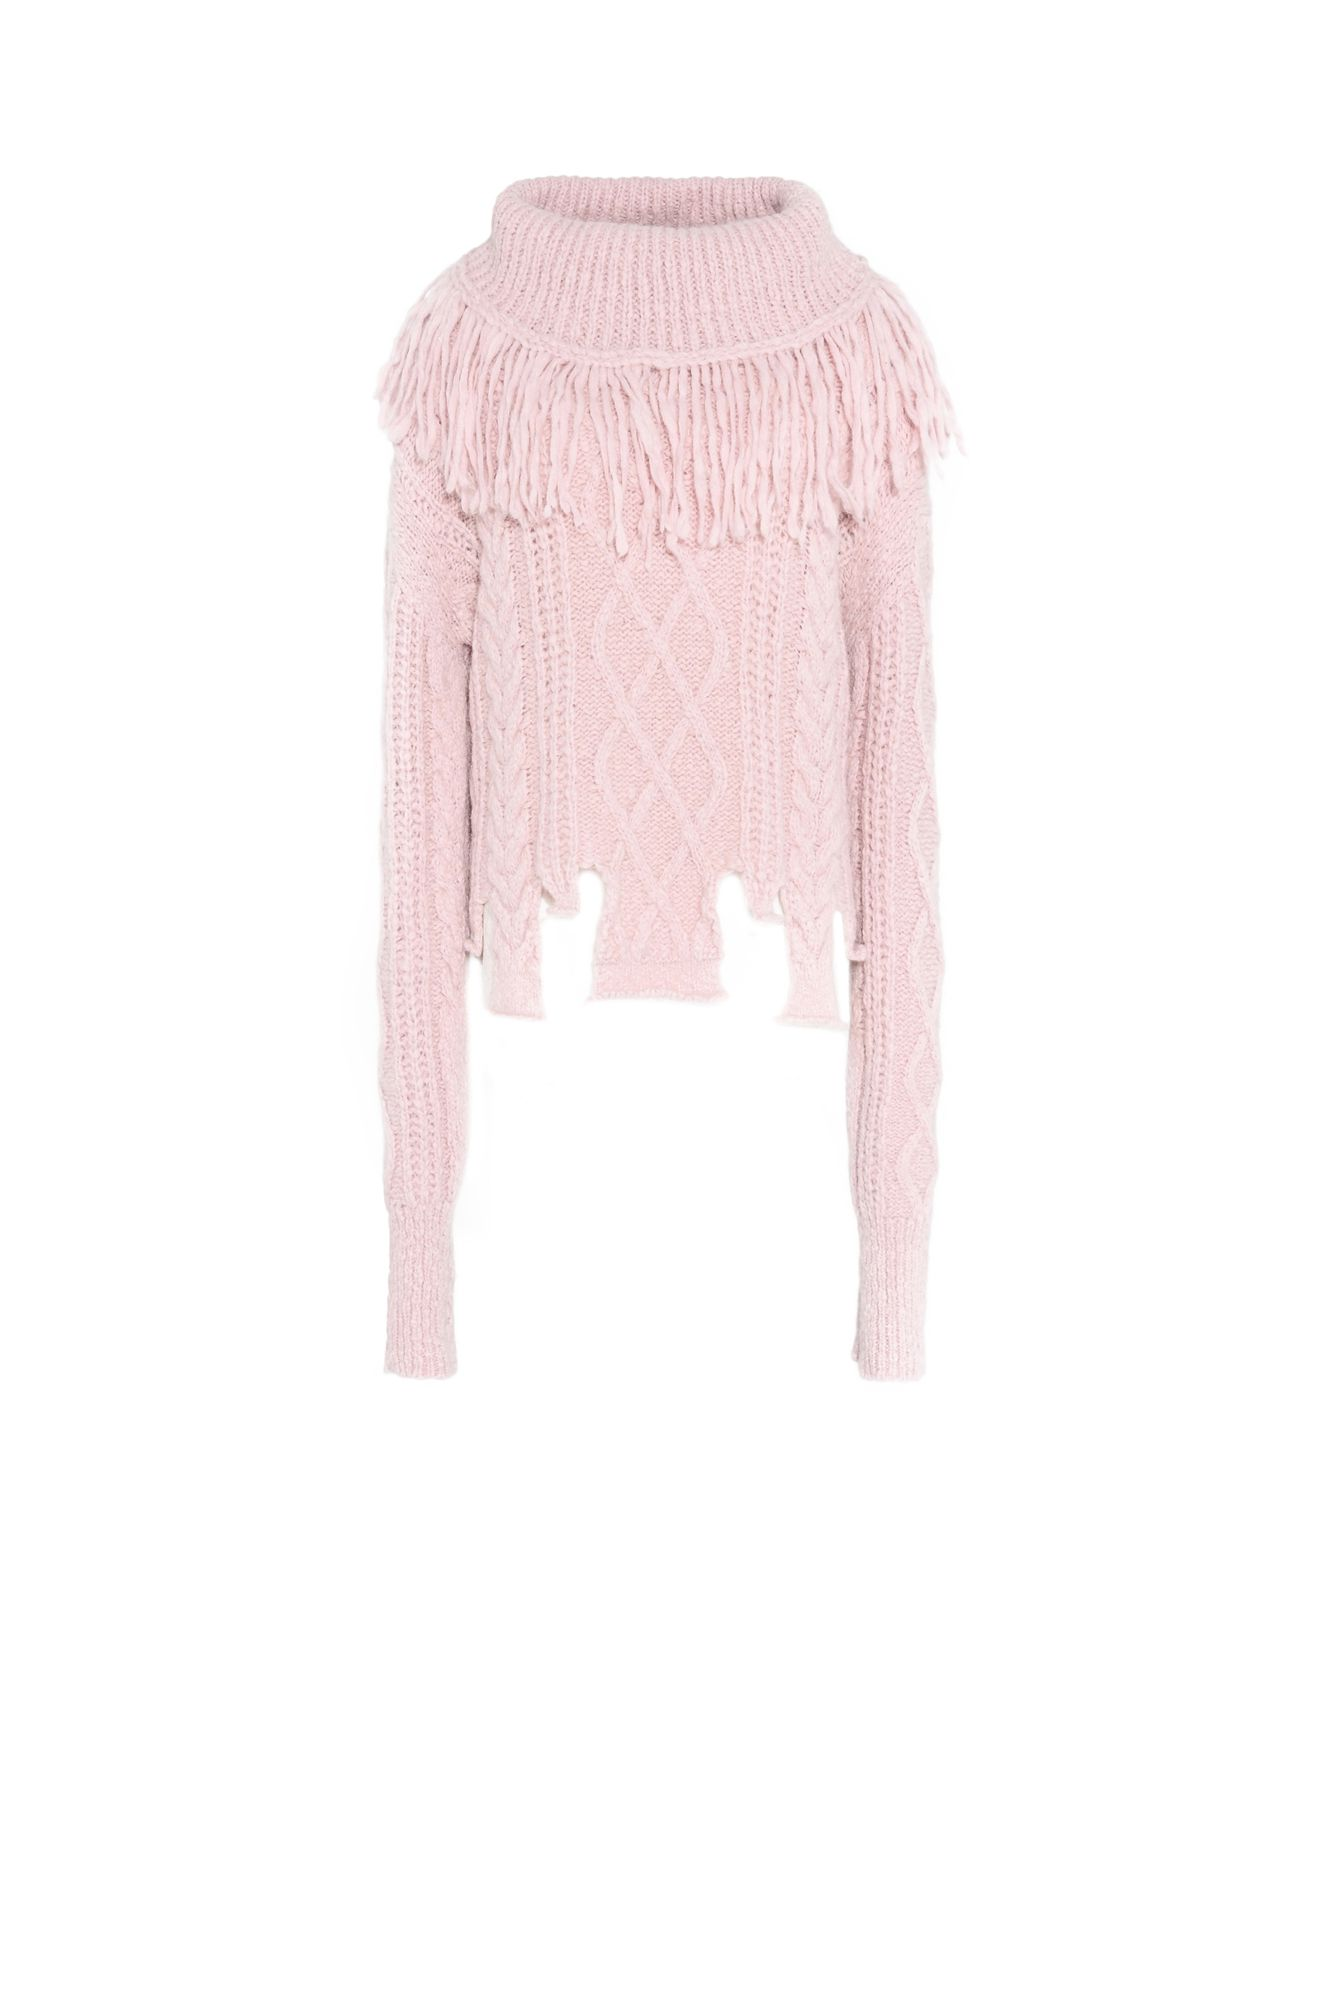 Pink over-sized sweater with fringe